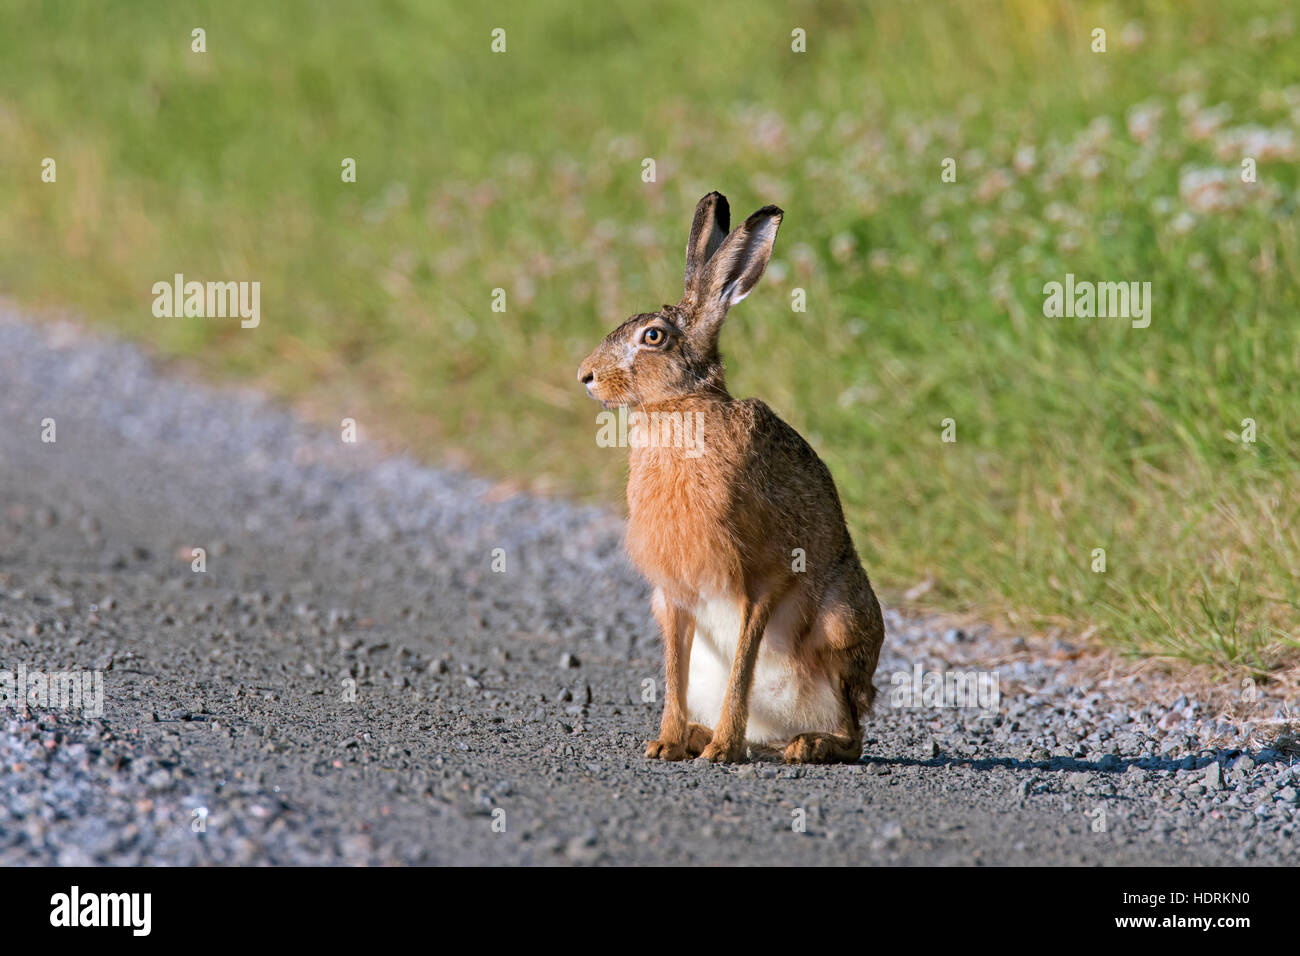 European Brown Hare (Lepus europaeus) sitting on dirt road - Stock Image